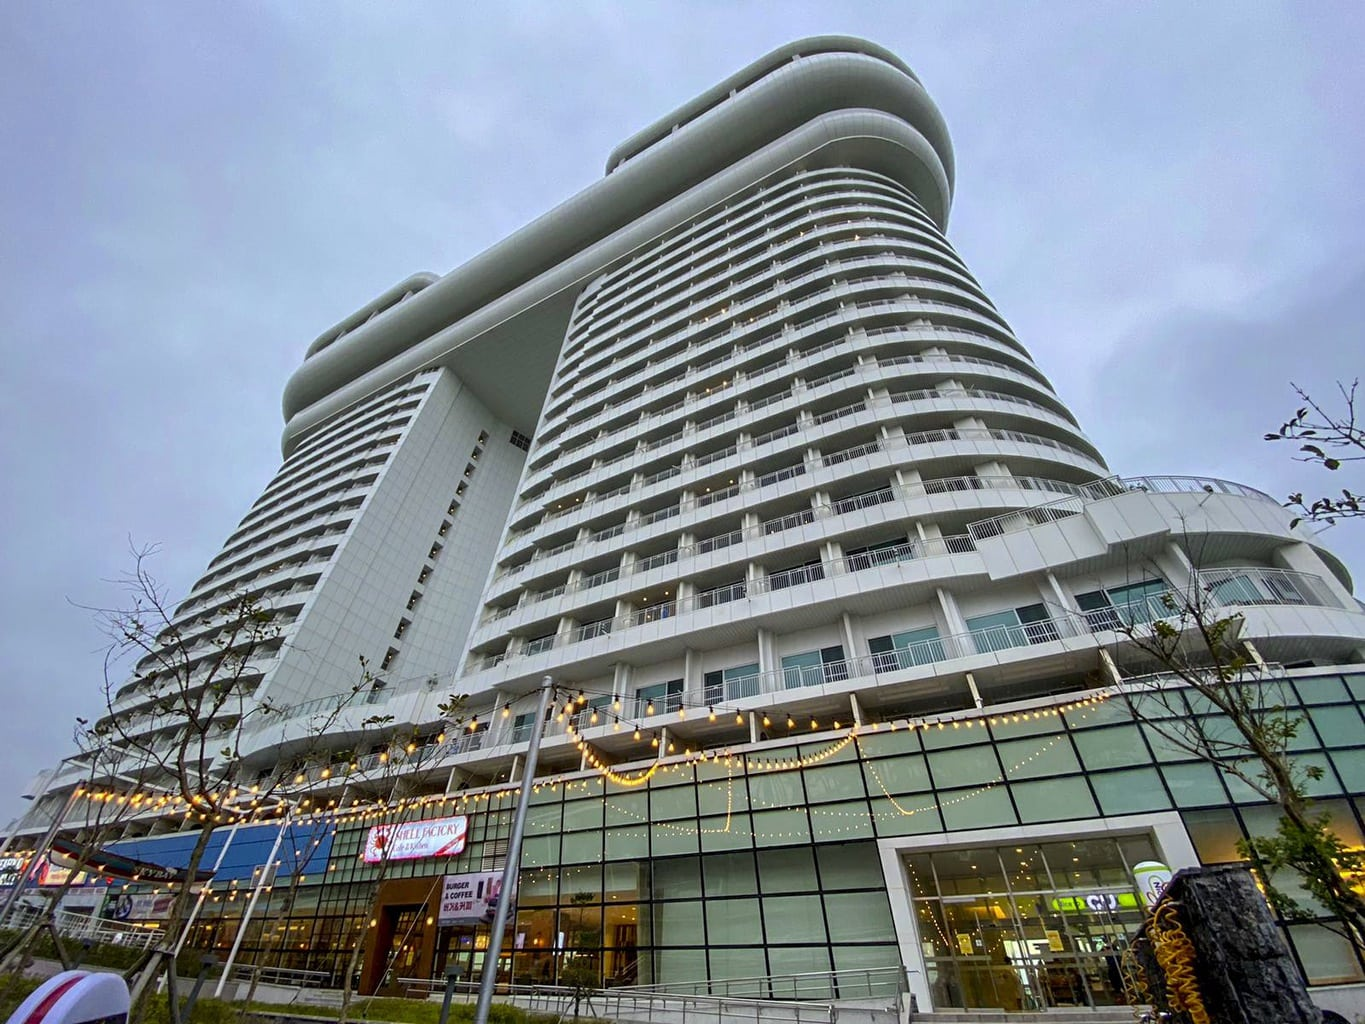 Golden Tulip Skybay Hotel in Gangneung